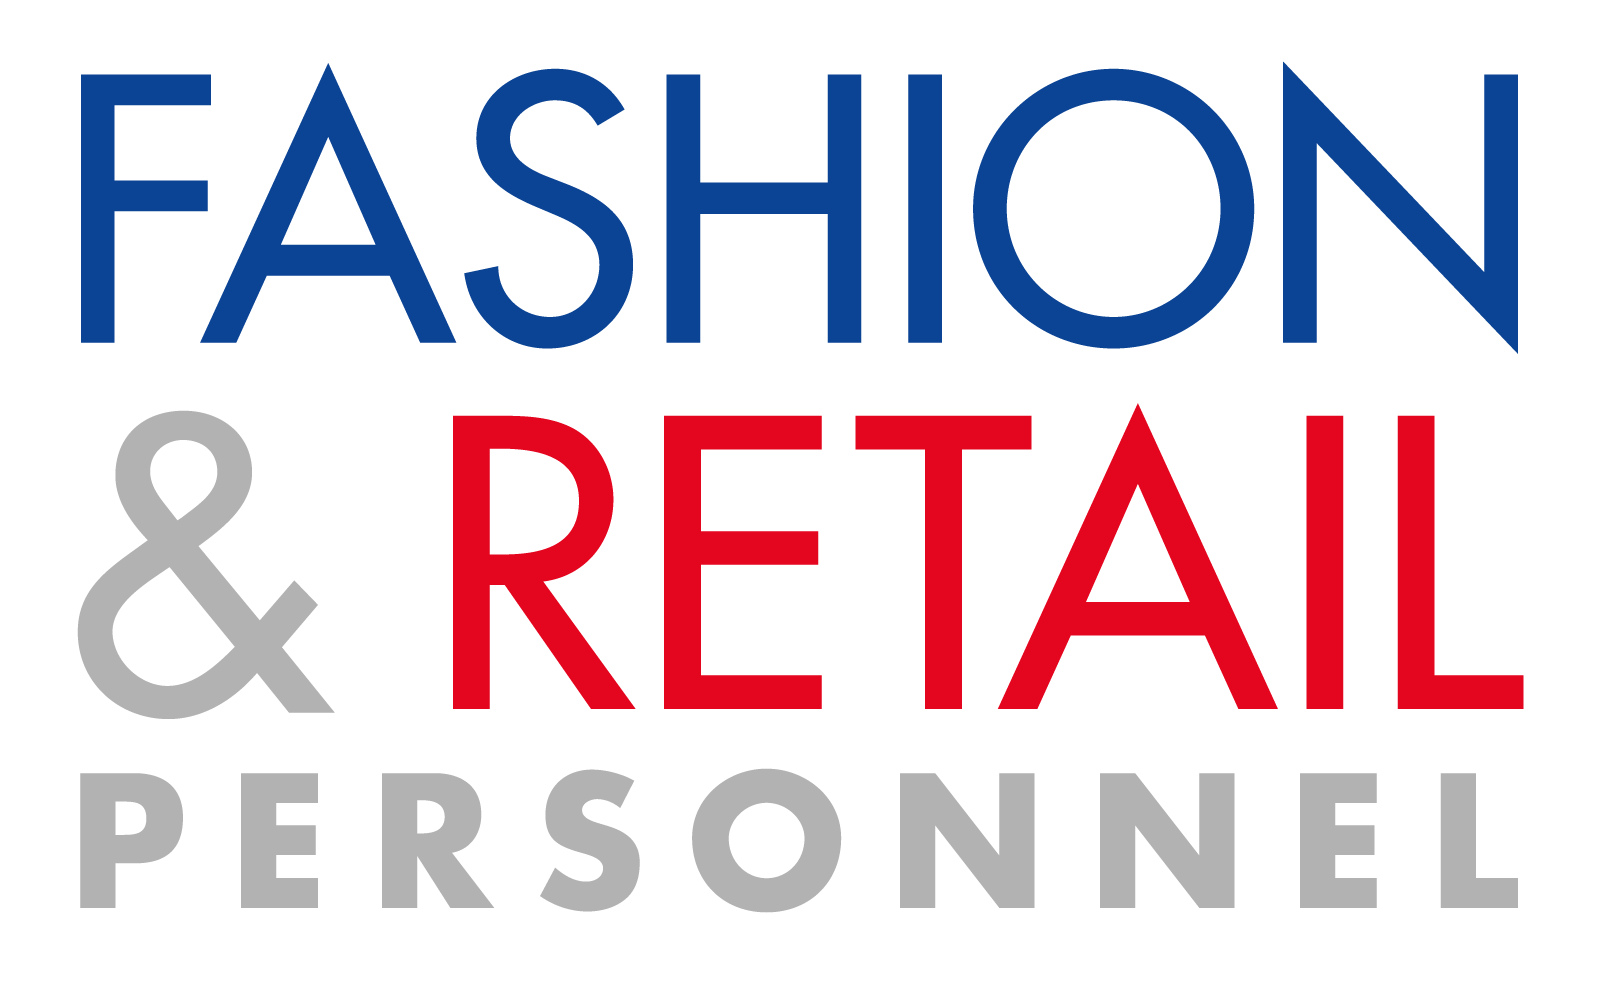 Fashion and retail personnel recruitment